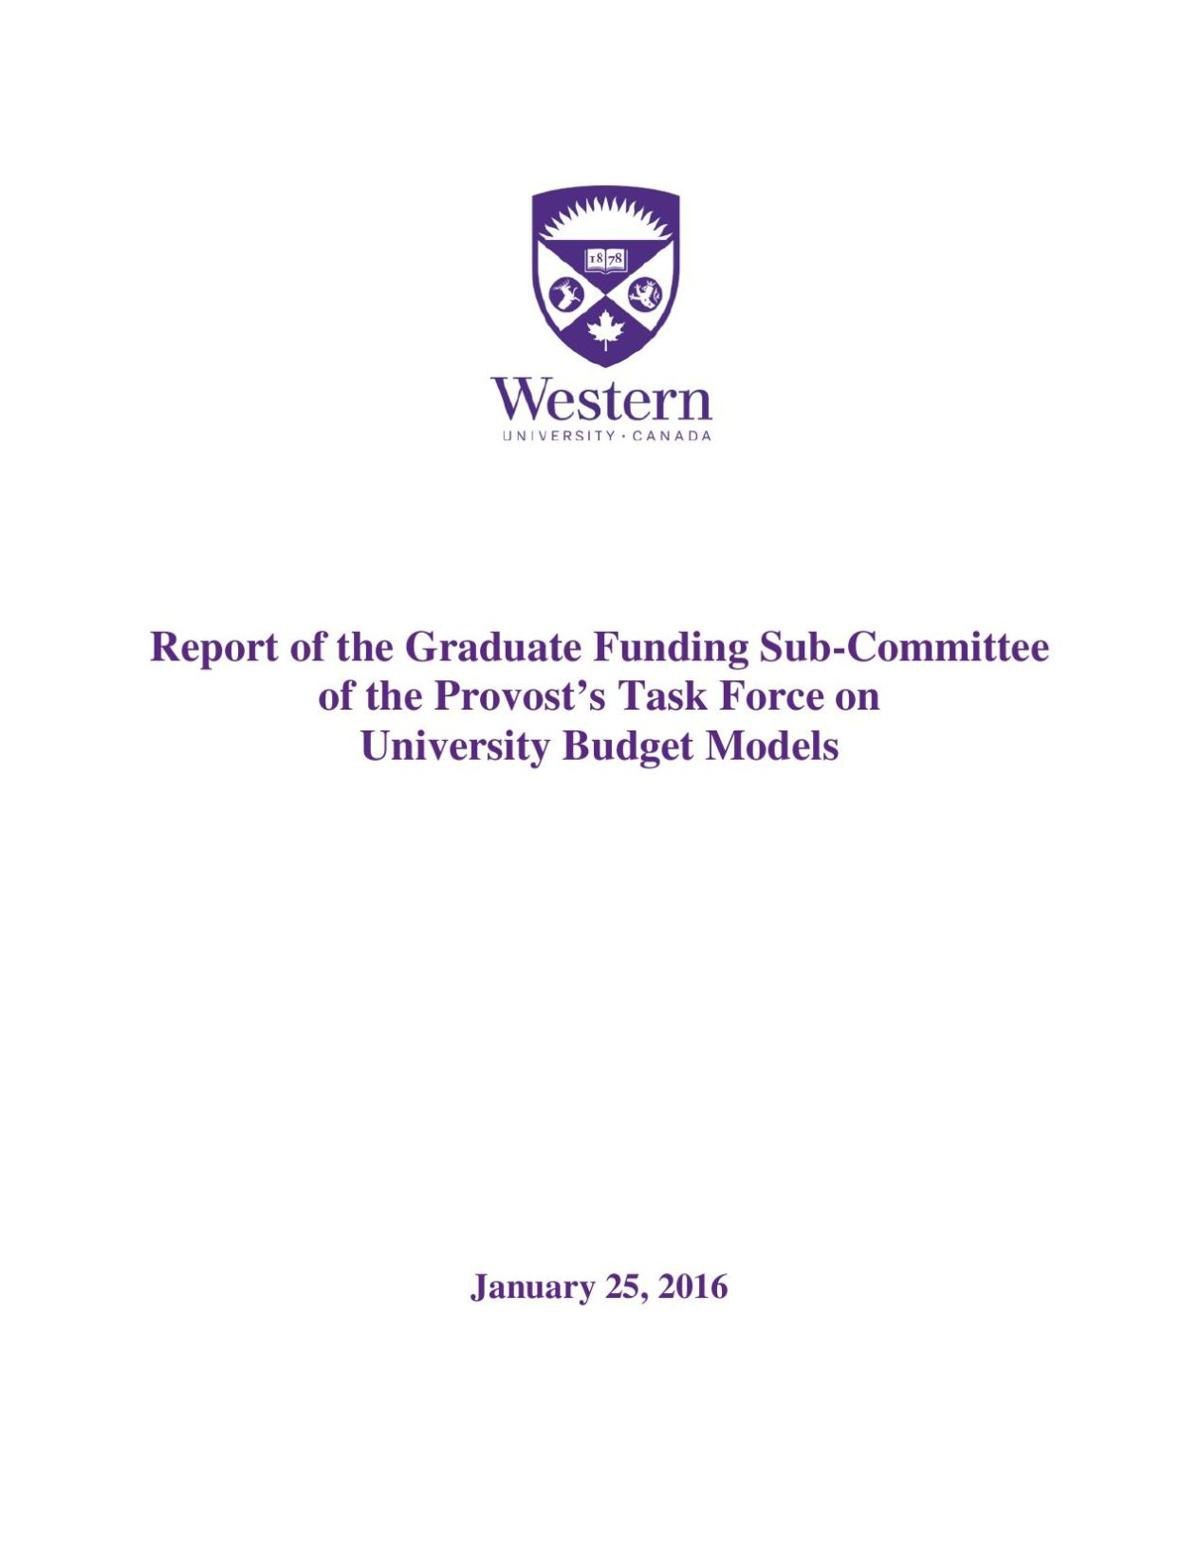 Graduate Funding Sub-Committee of Provost's Budget Task Force Report